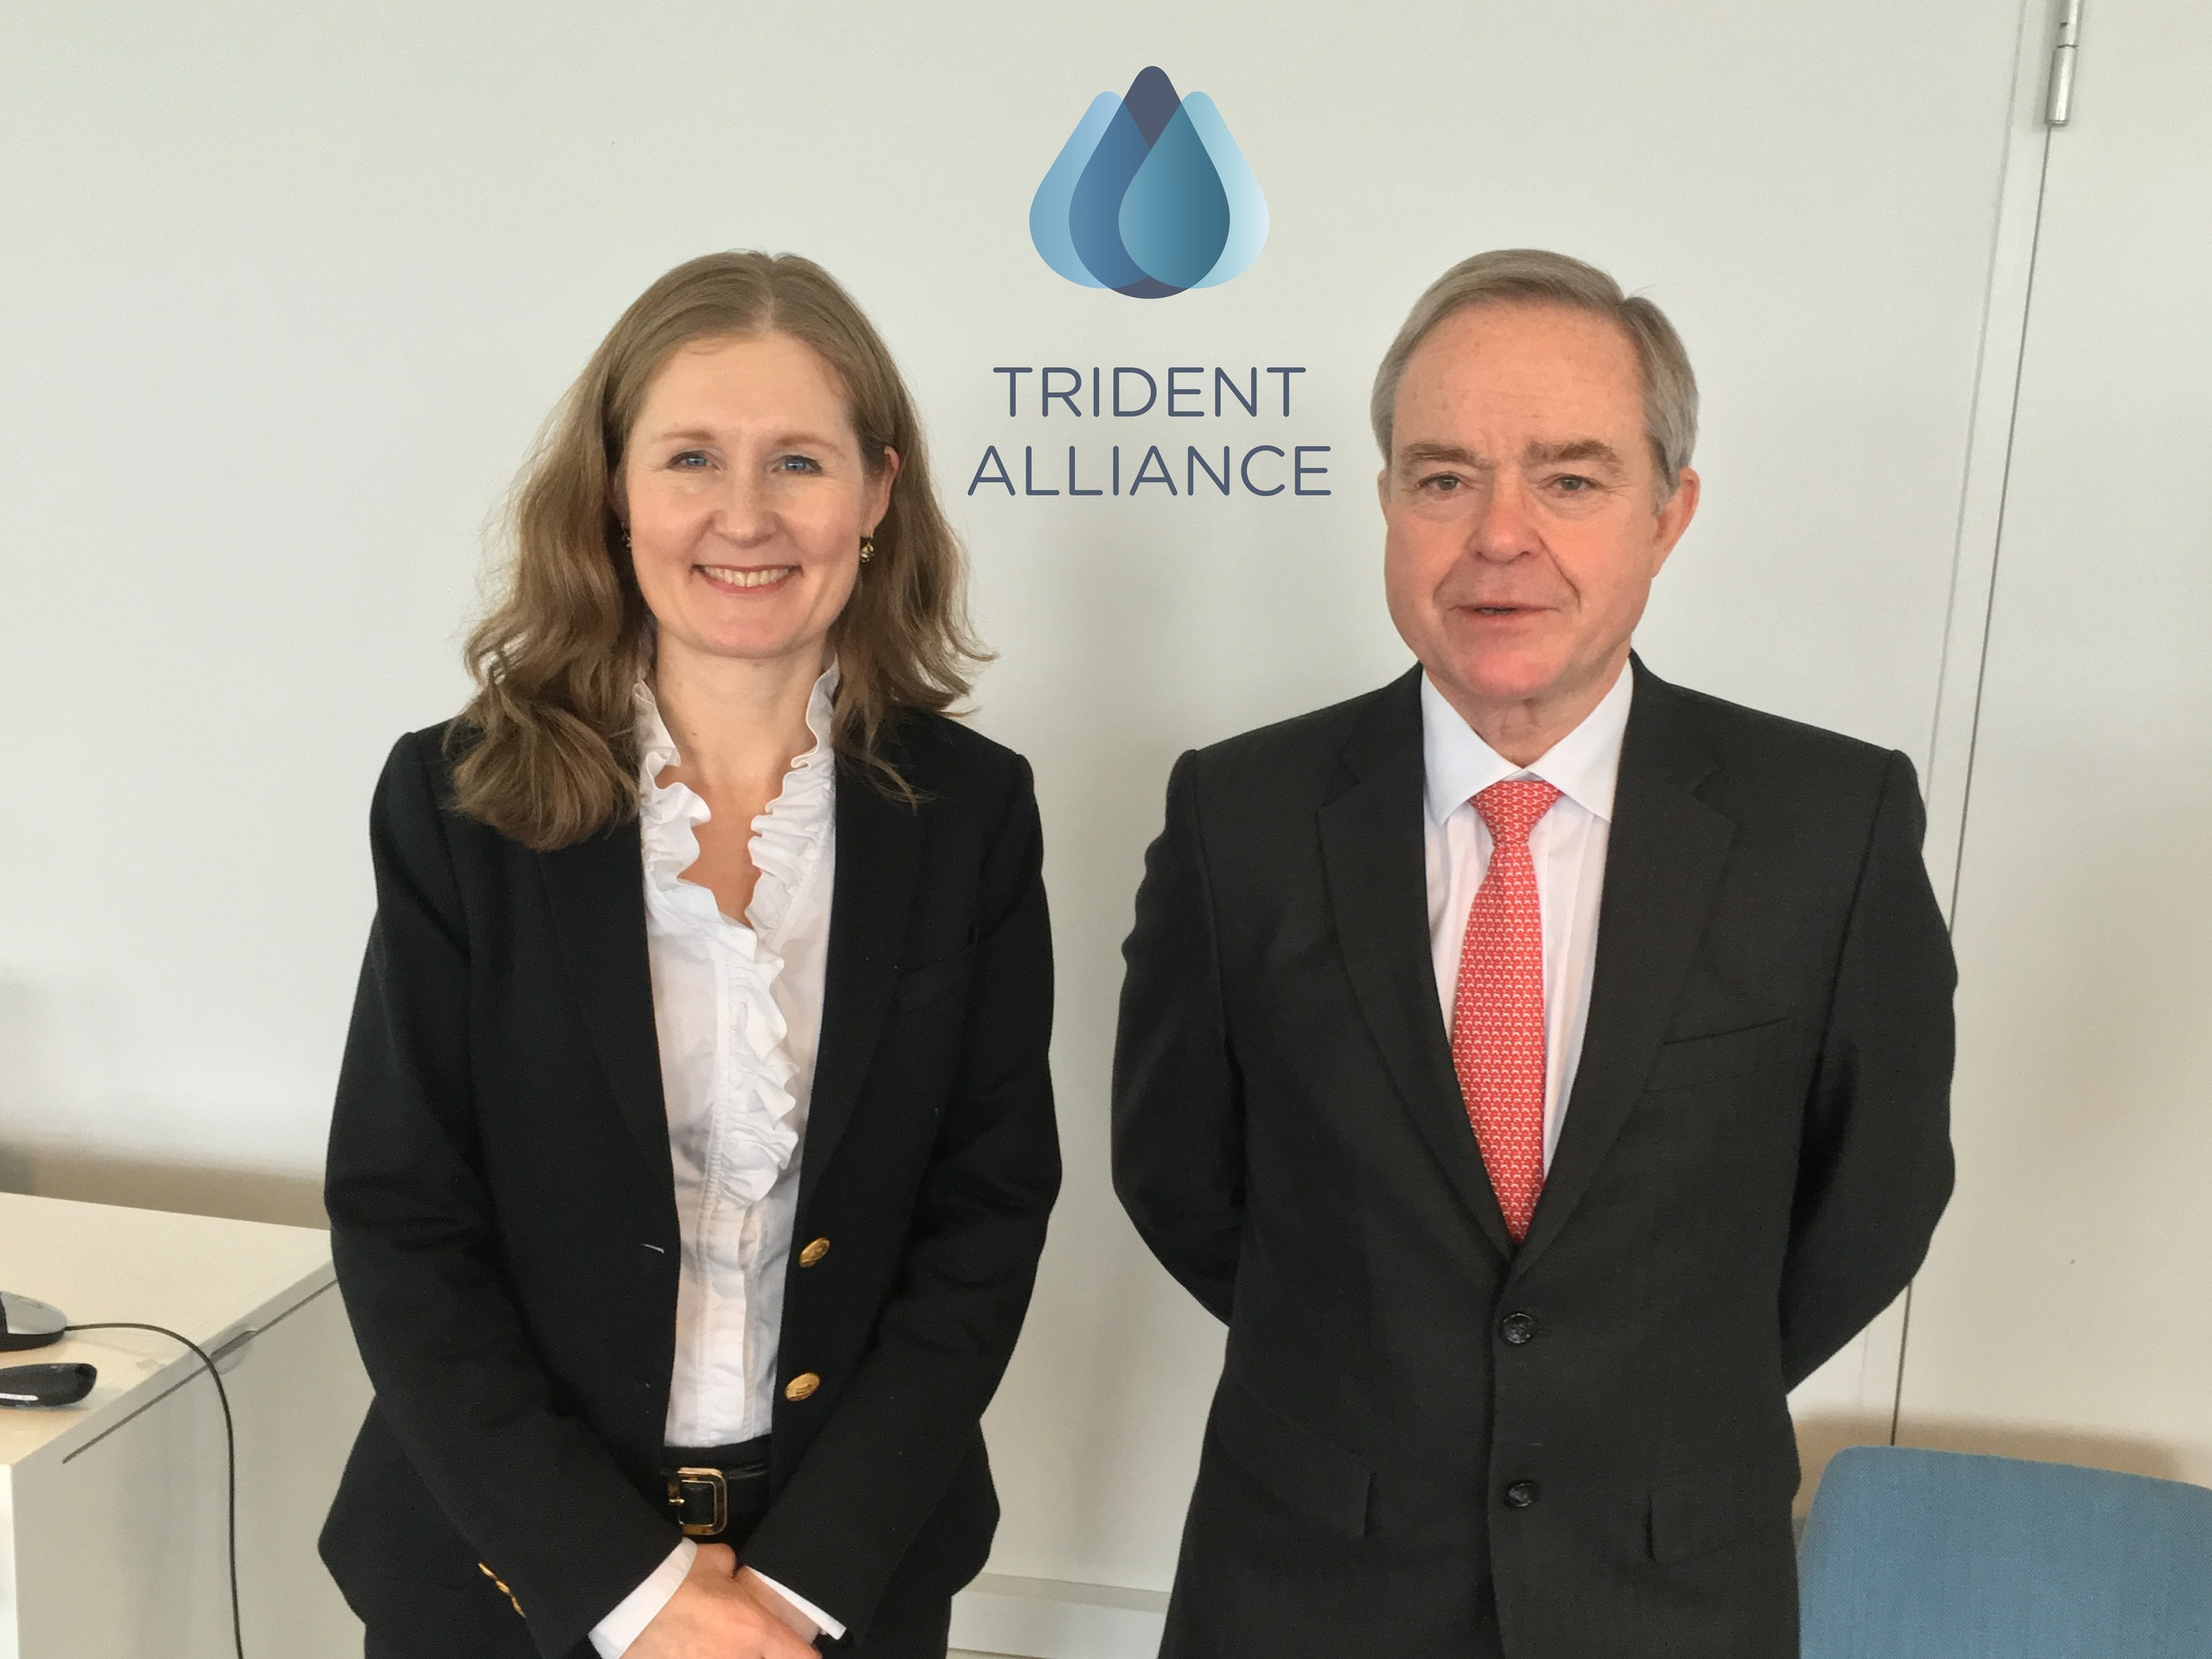 Anna Larsson, Chair Trident Alliance and Robin Meech, Chairman of IBIA, at the Trident Alliance members meeting in Copenhagen on March 14.